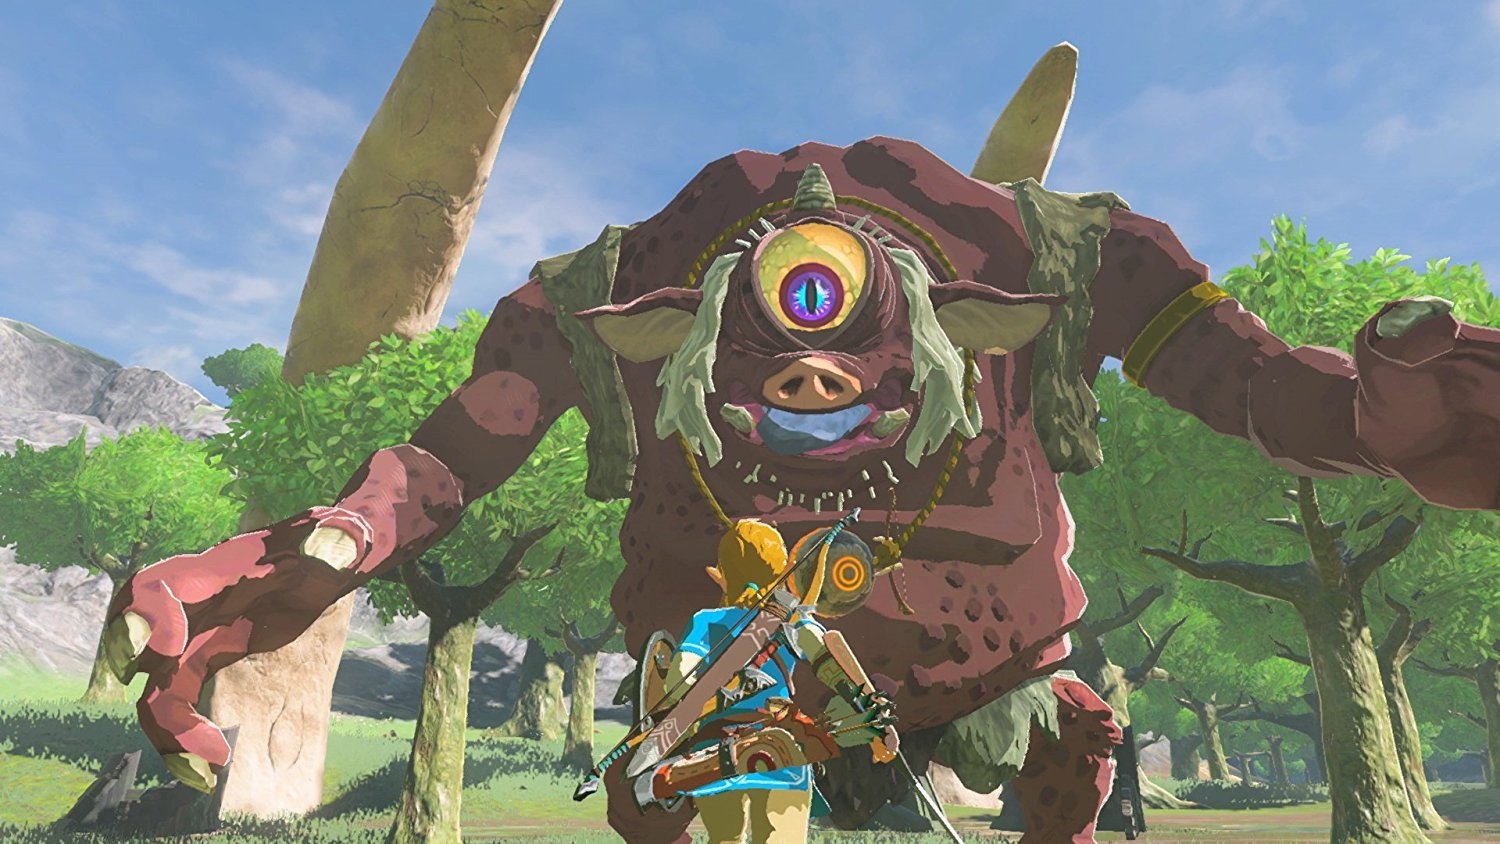 Breath of the Wild takes the throne as the top-selling Zelda game screenshot